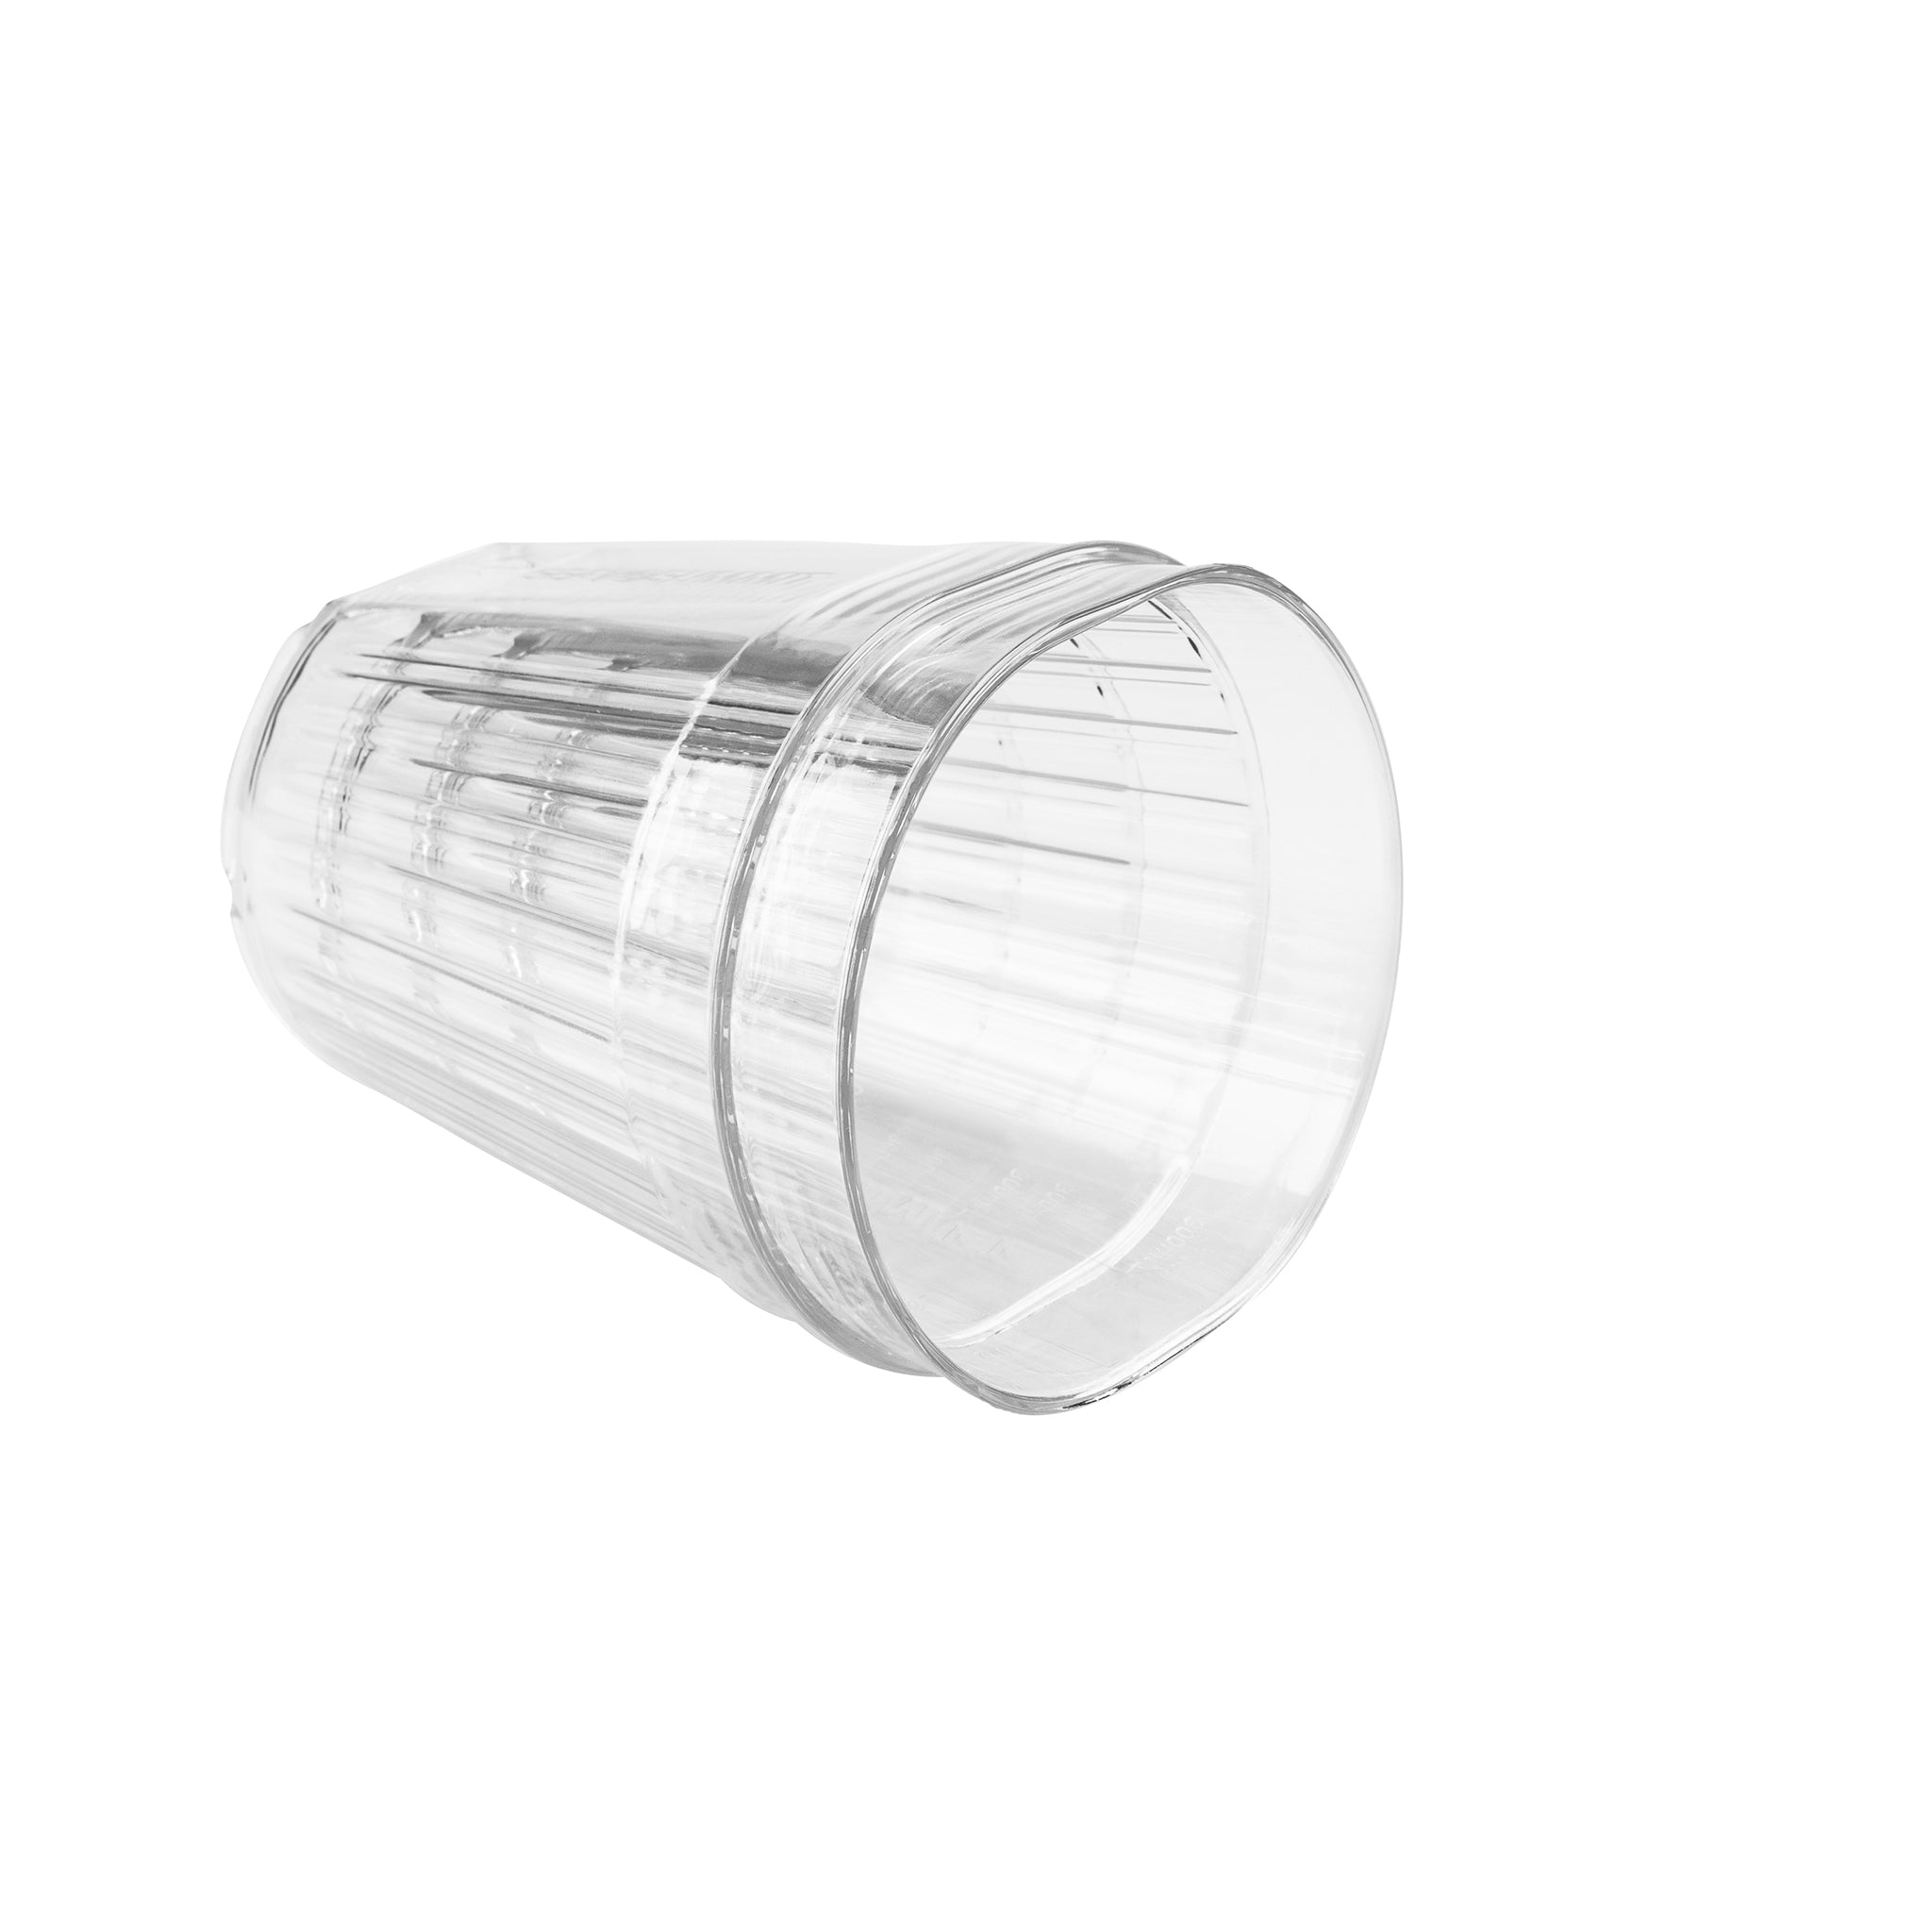 Delta Light Tumbler _ reusable clear camping cup